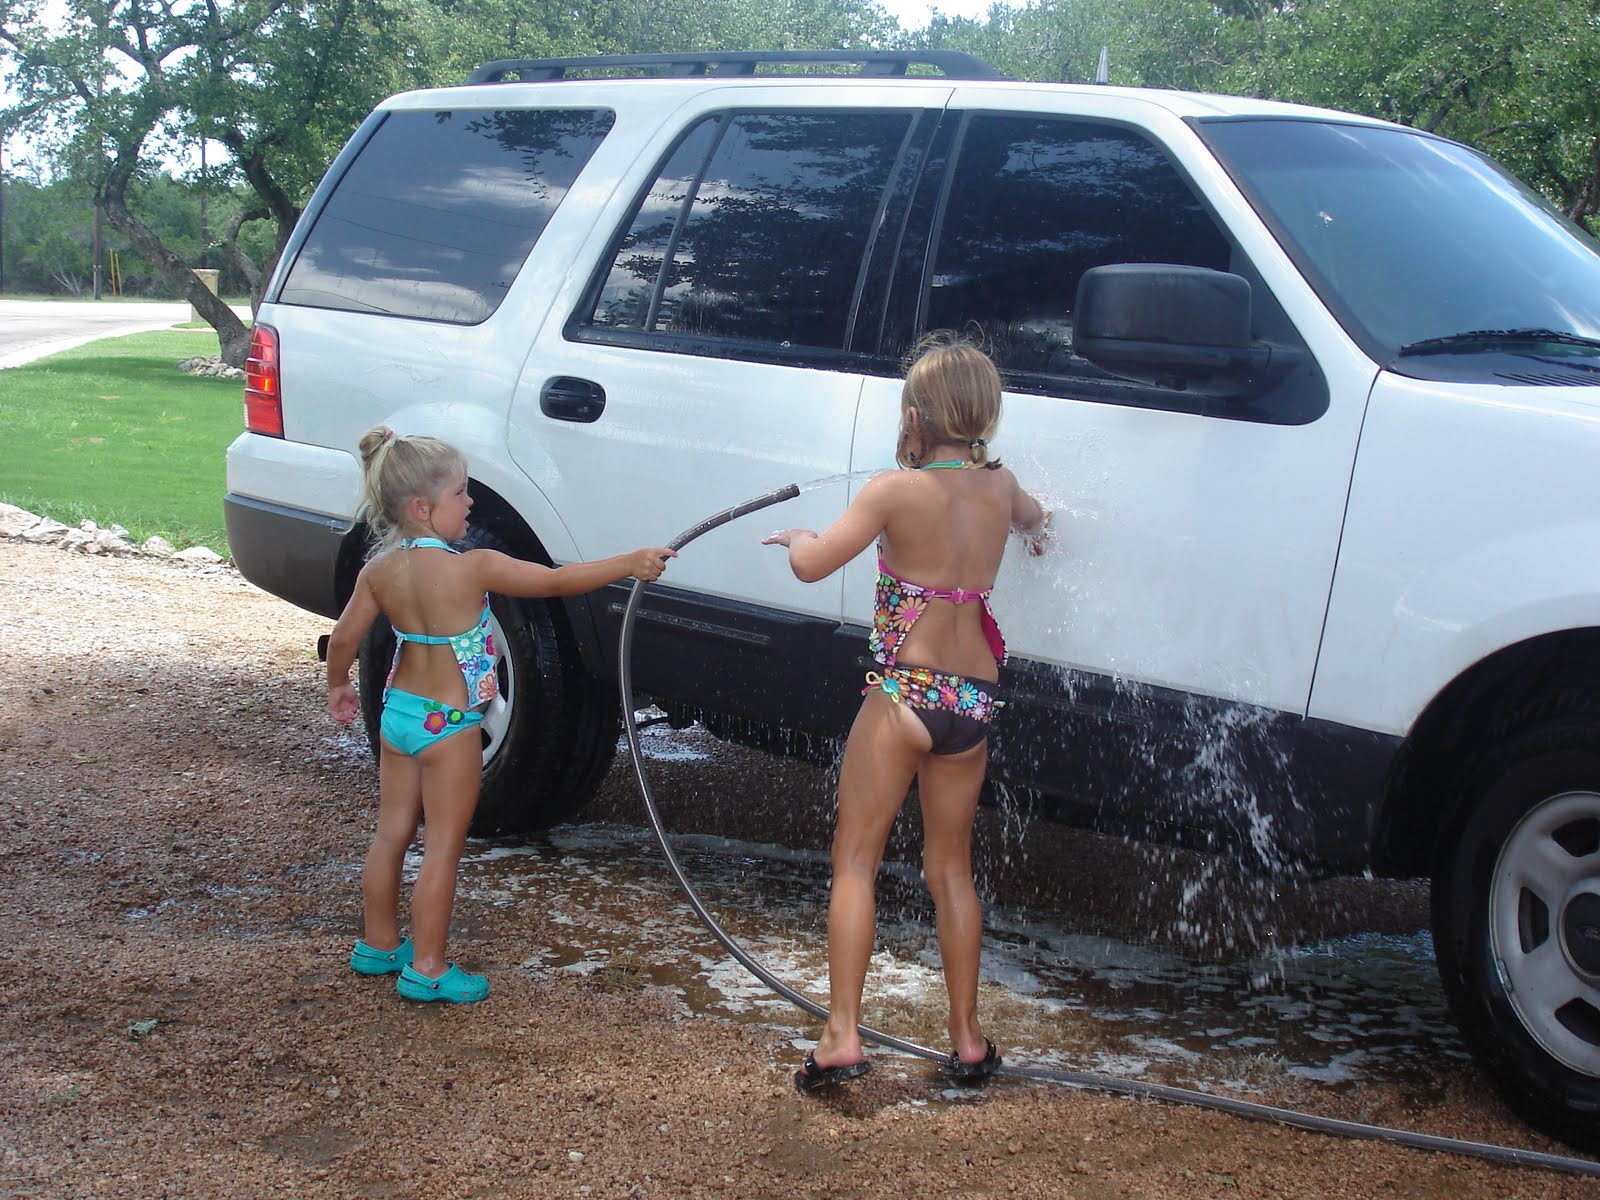 High School Bikini Car Wash http://davisdivasanddude.blogspot.com/2010/07/pink-kayaks.html